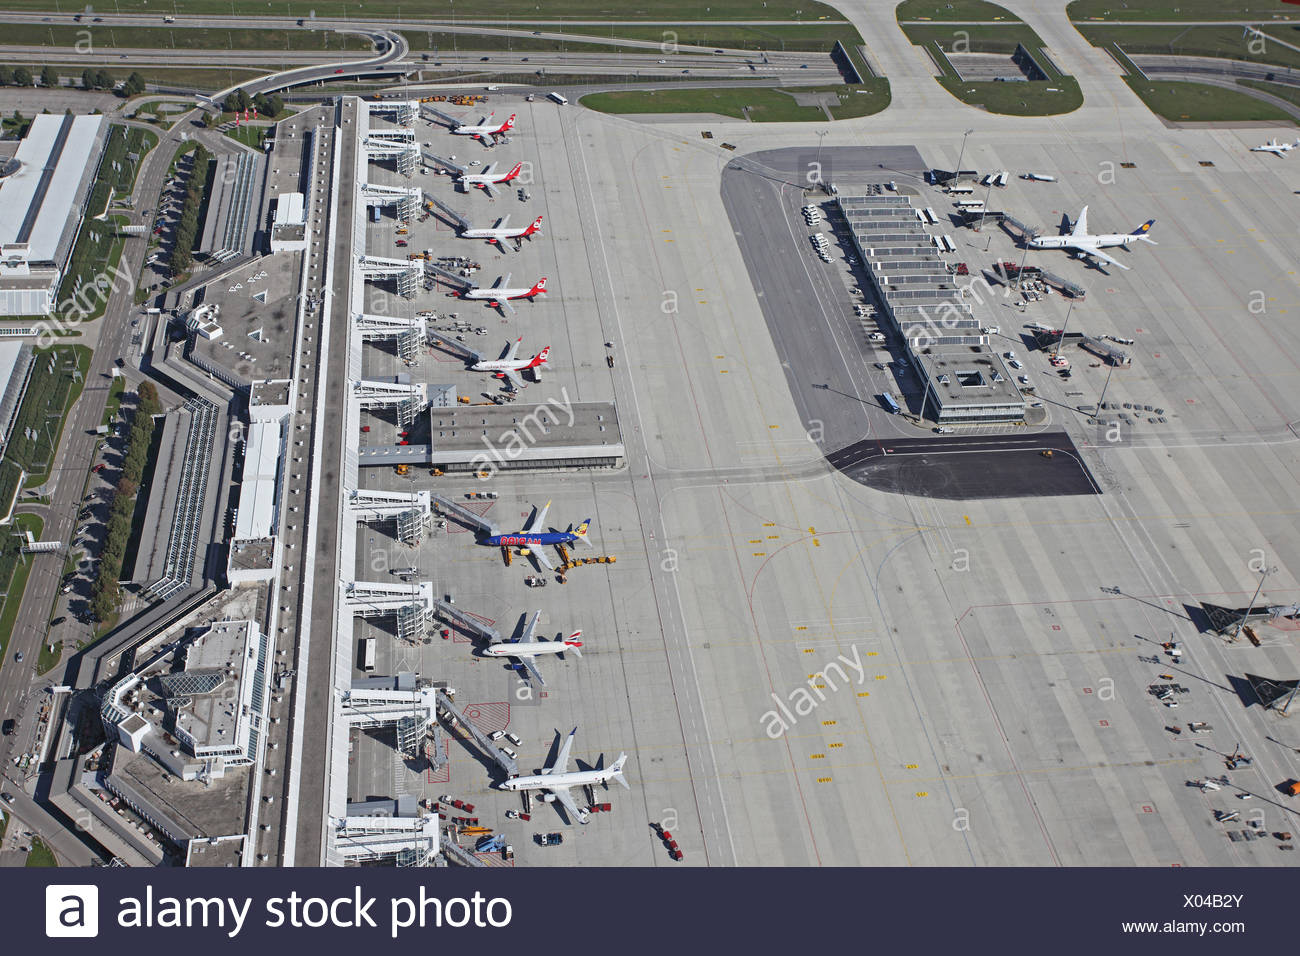 Munic airport, with parts of Terminal 1, Germany, Bavaria, Muenchen - Stock Image